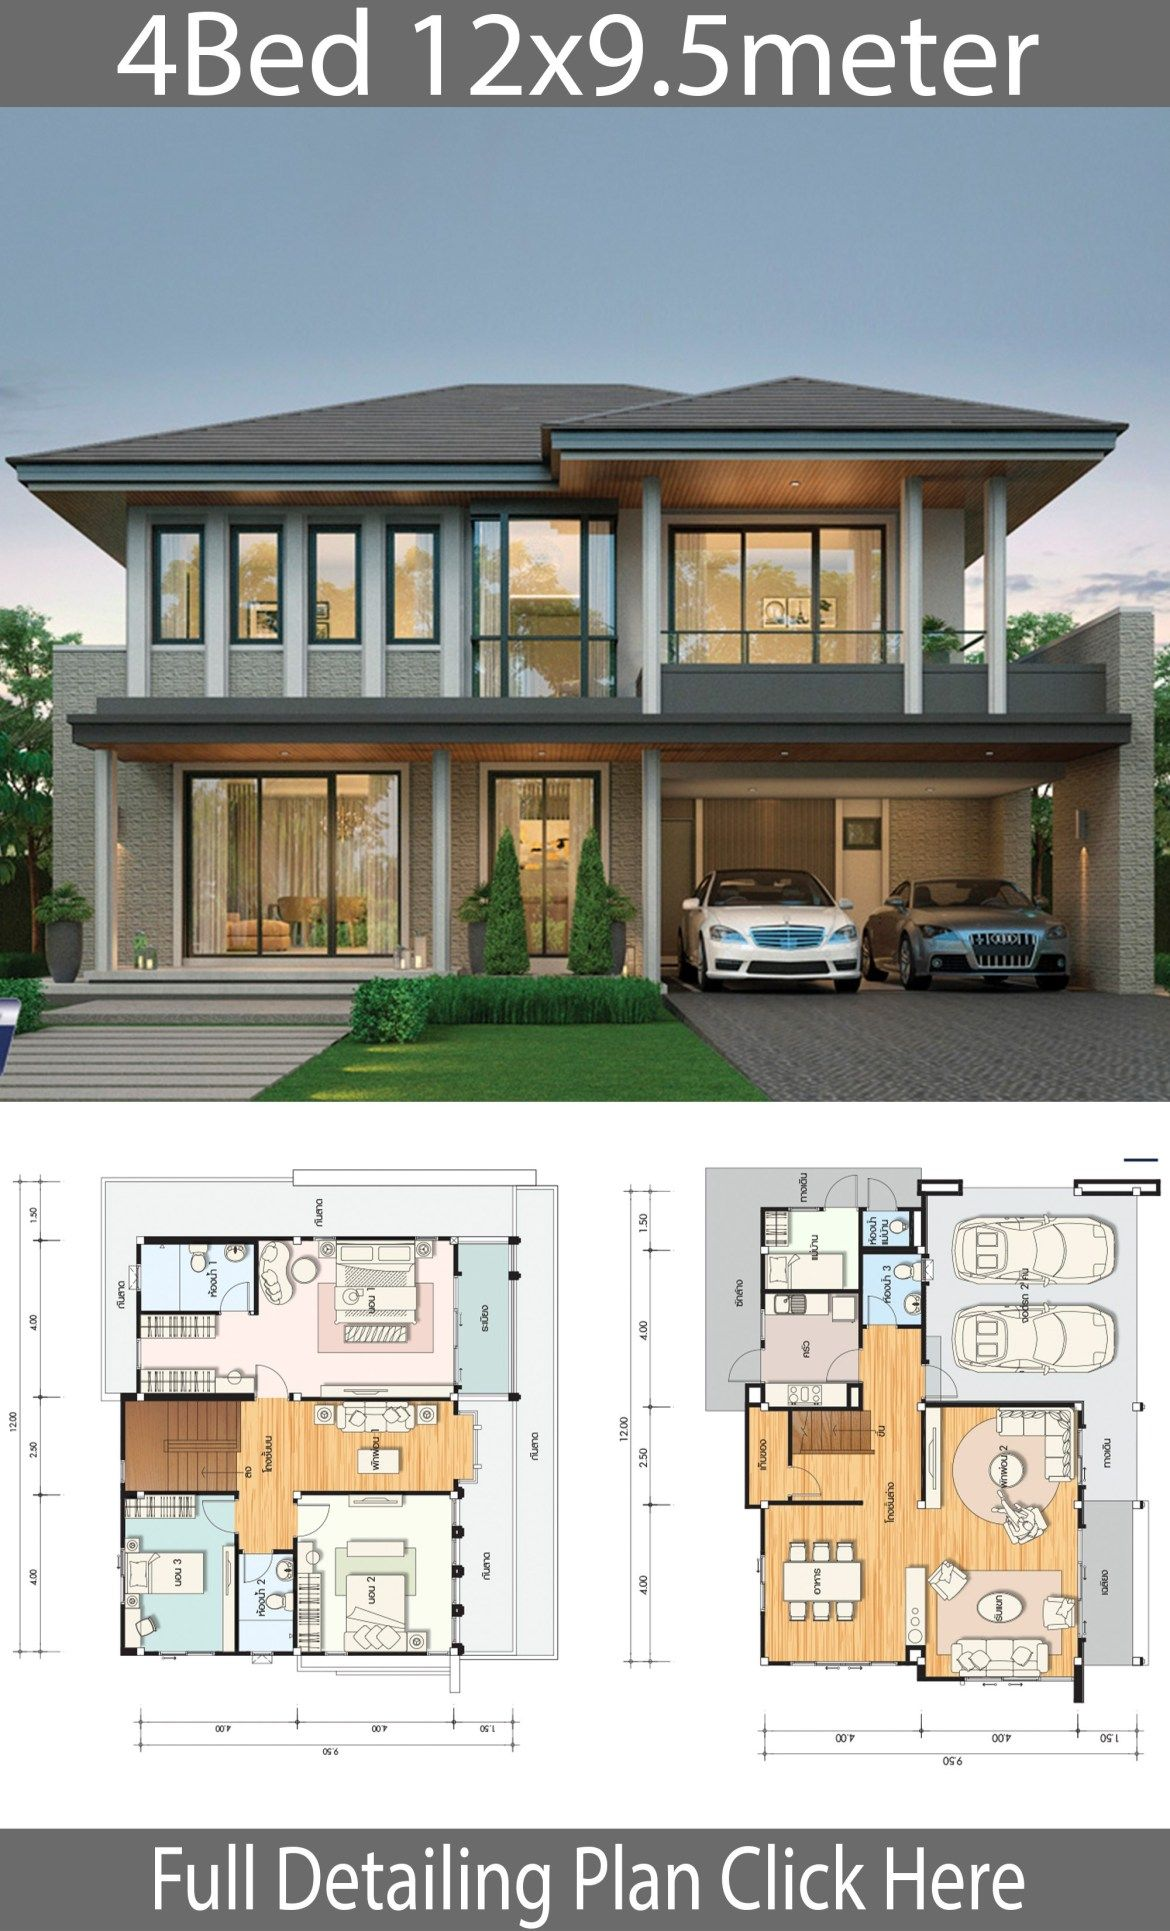 House design plan 12x9 5m with 4 bedrooms is part of Home design plans - House design plan 12x9 5m with 4 bedrooms  Style garden HouseHouse descriptionNumber of floors 2 storey housebedroom 3 roomstoilet 3 roomsmaid's room